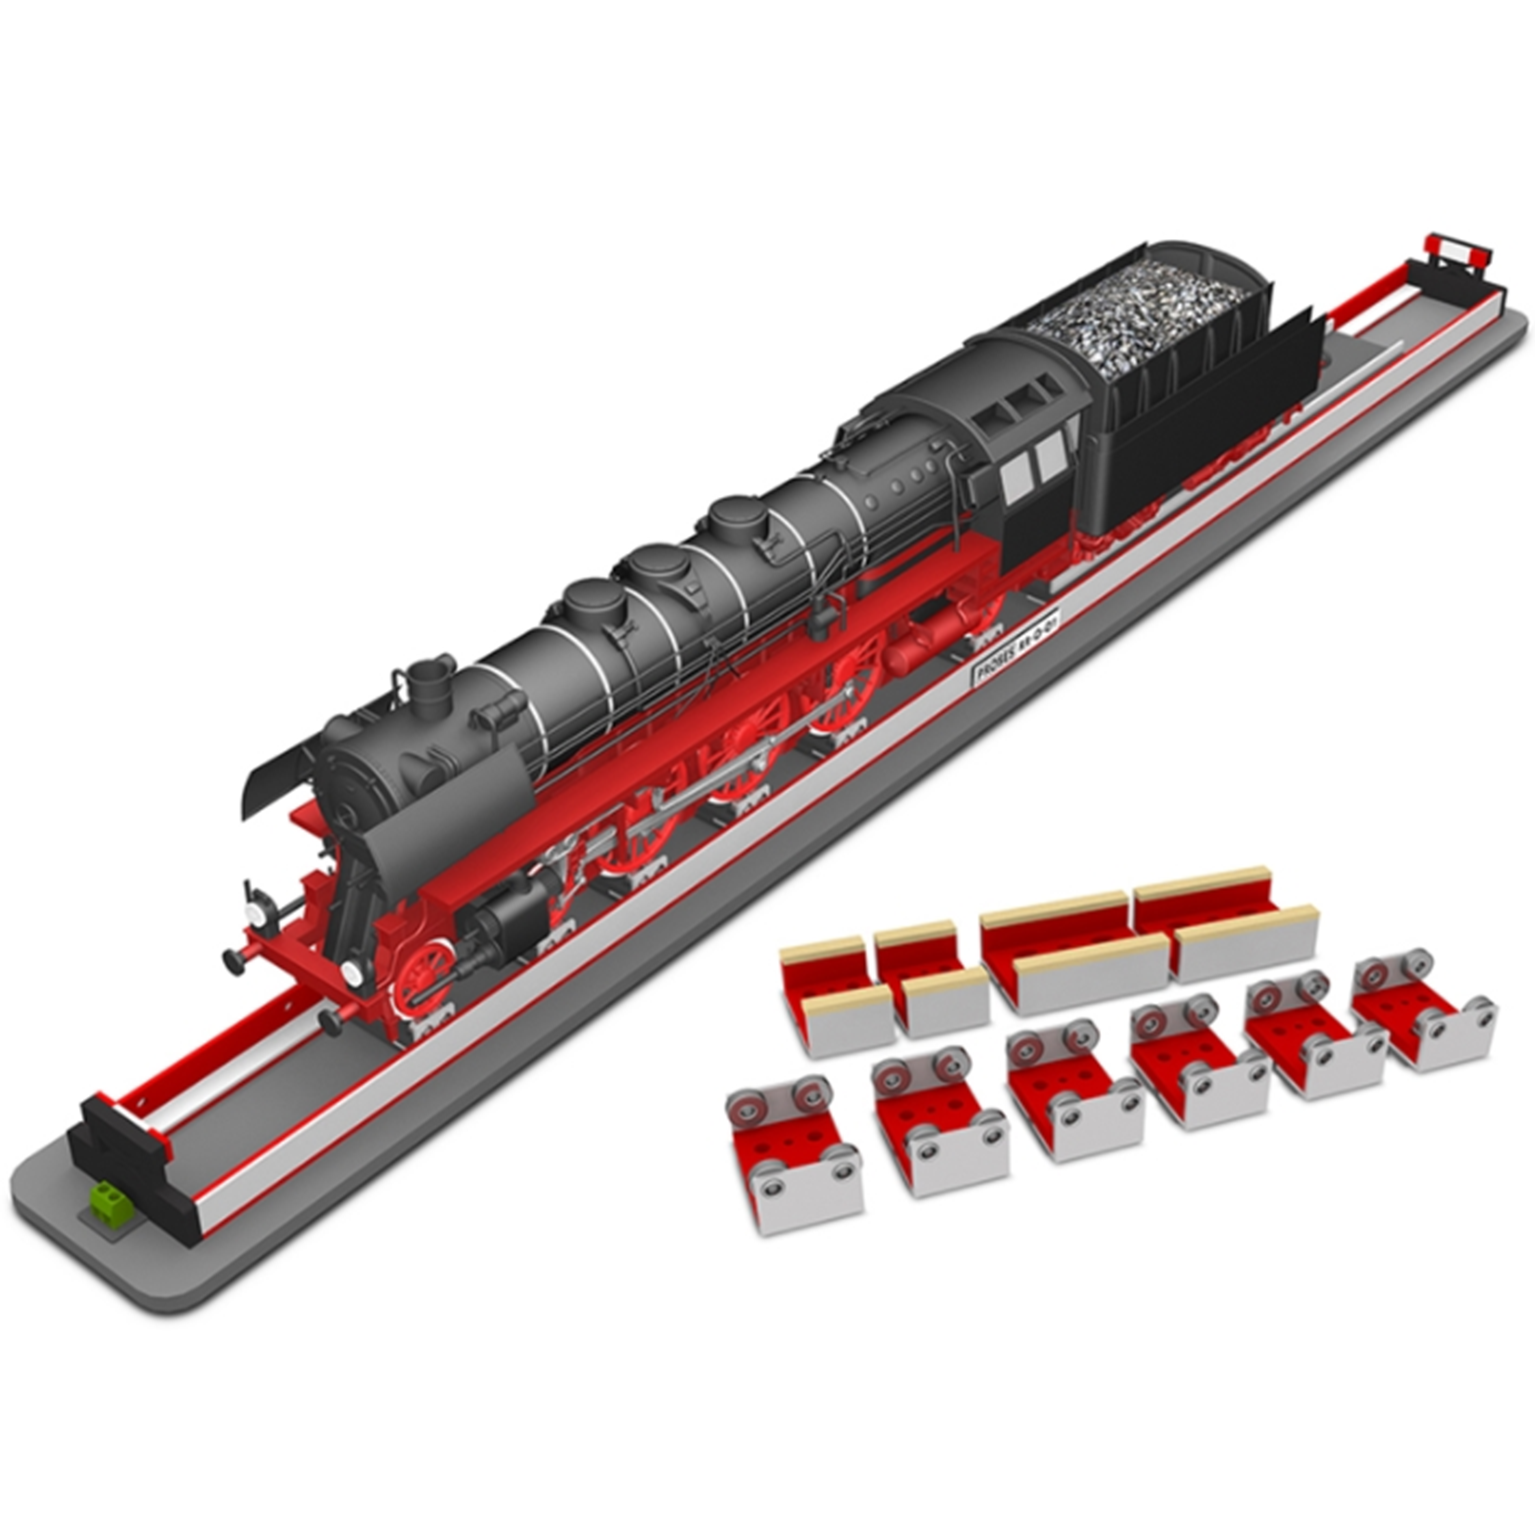 Rolling Road Stand with 6 rollers and 4 cleaners